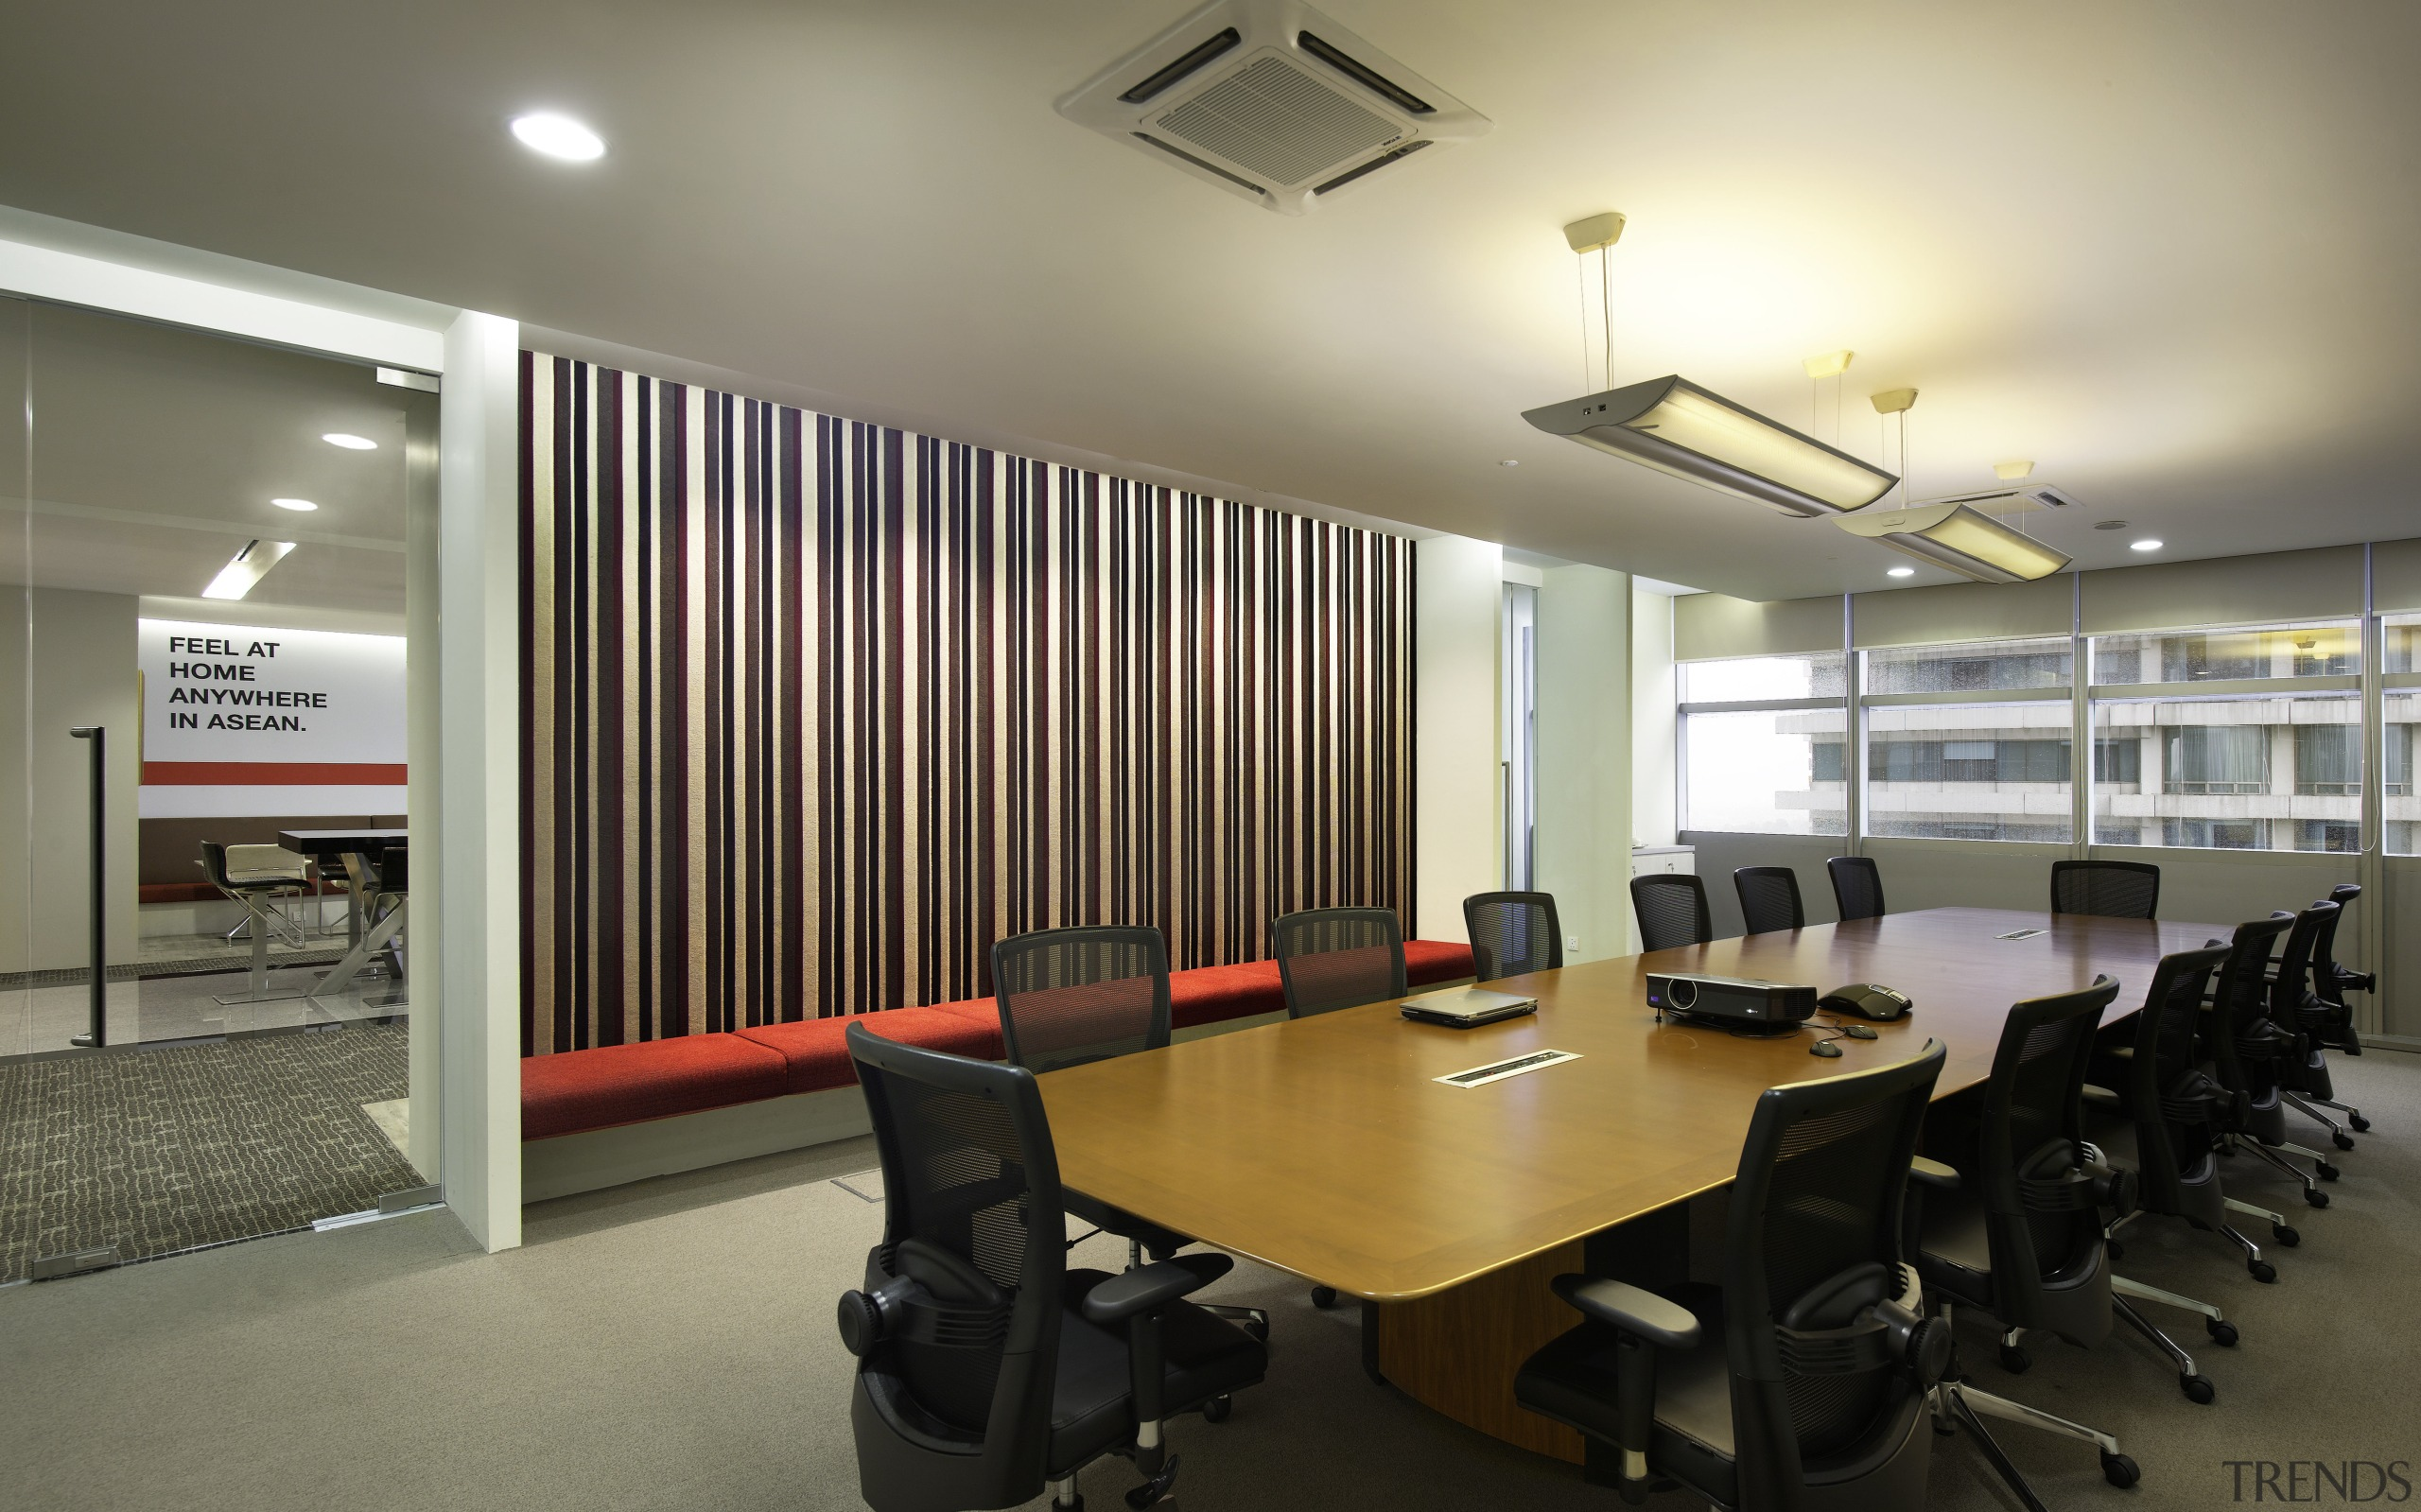 Breakout areas and meeting rooms sport touches of ceiling, conference hall, interior design, office, real estate, gray, black